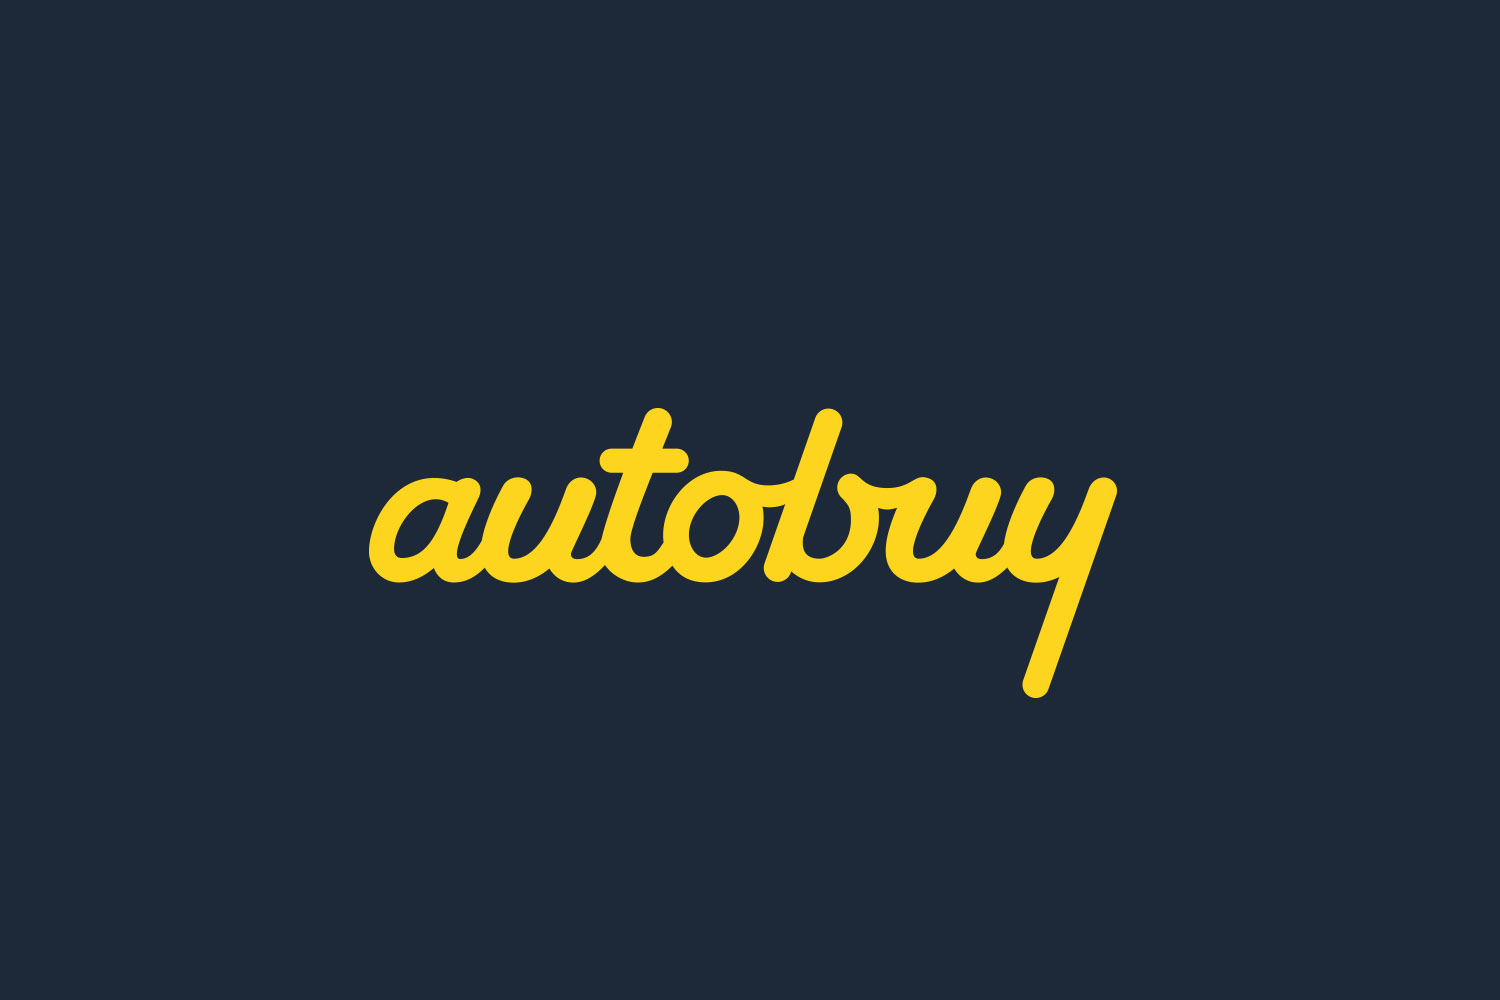 Cover image: Autobuy